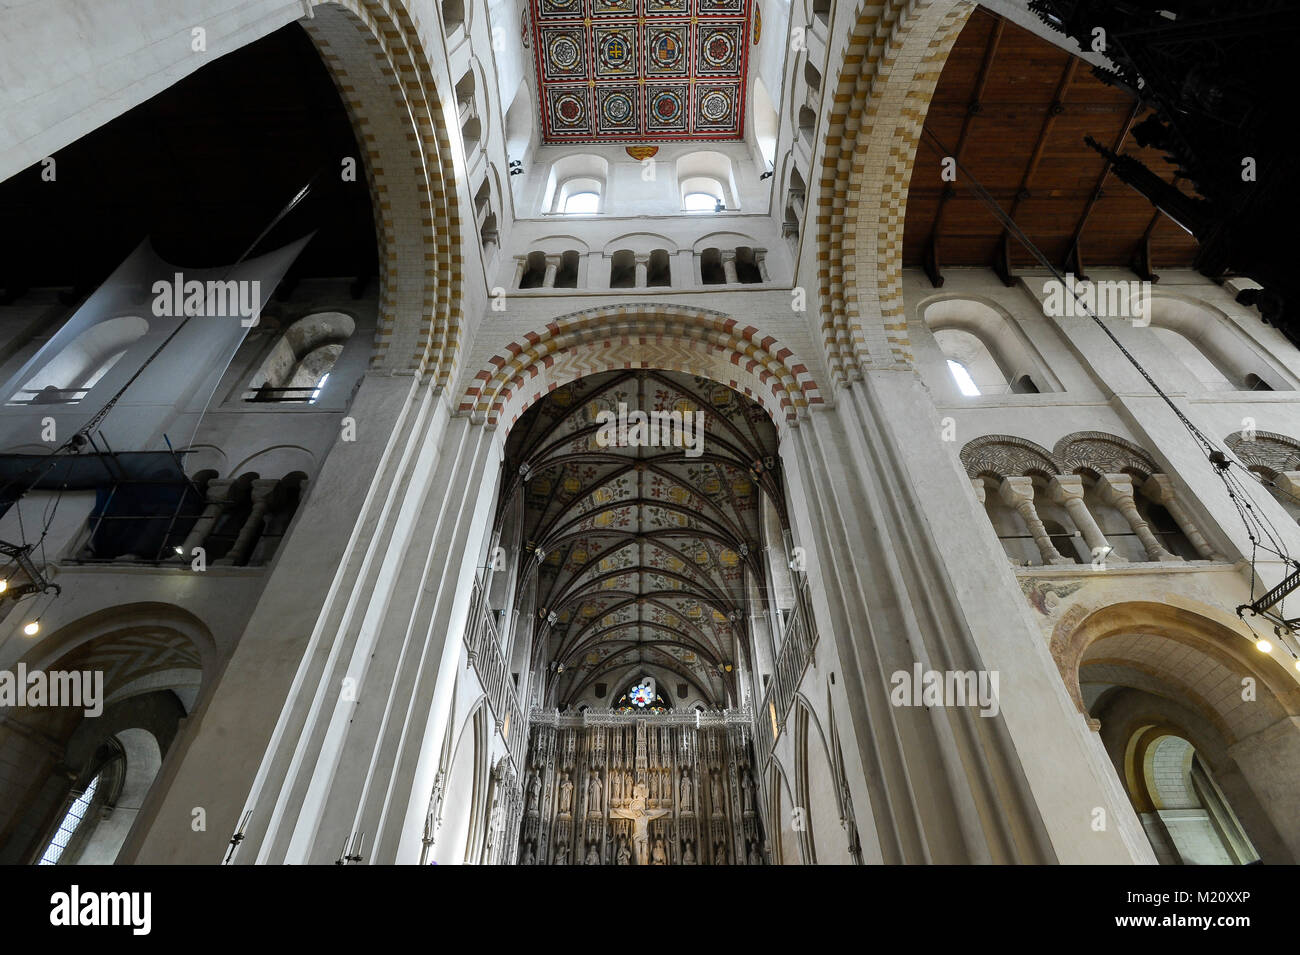 Norman, Romanesque and Gothic style Cathedral and Abbey Church of St Alban from XI century in St Albans, Hertfordshire, Stock Photo